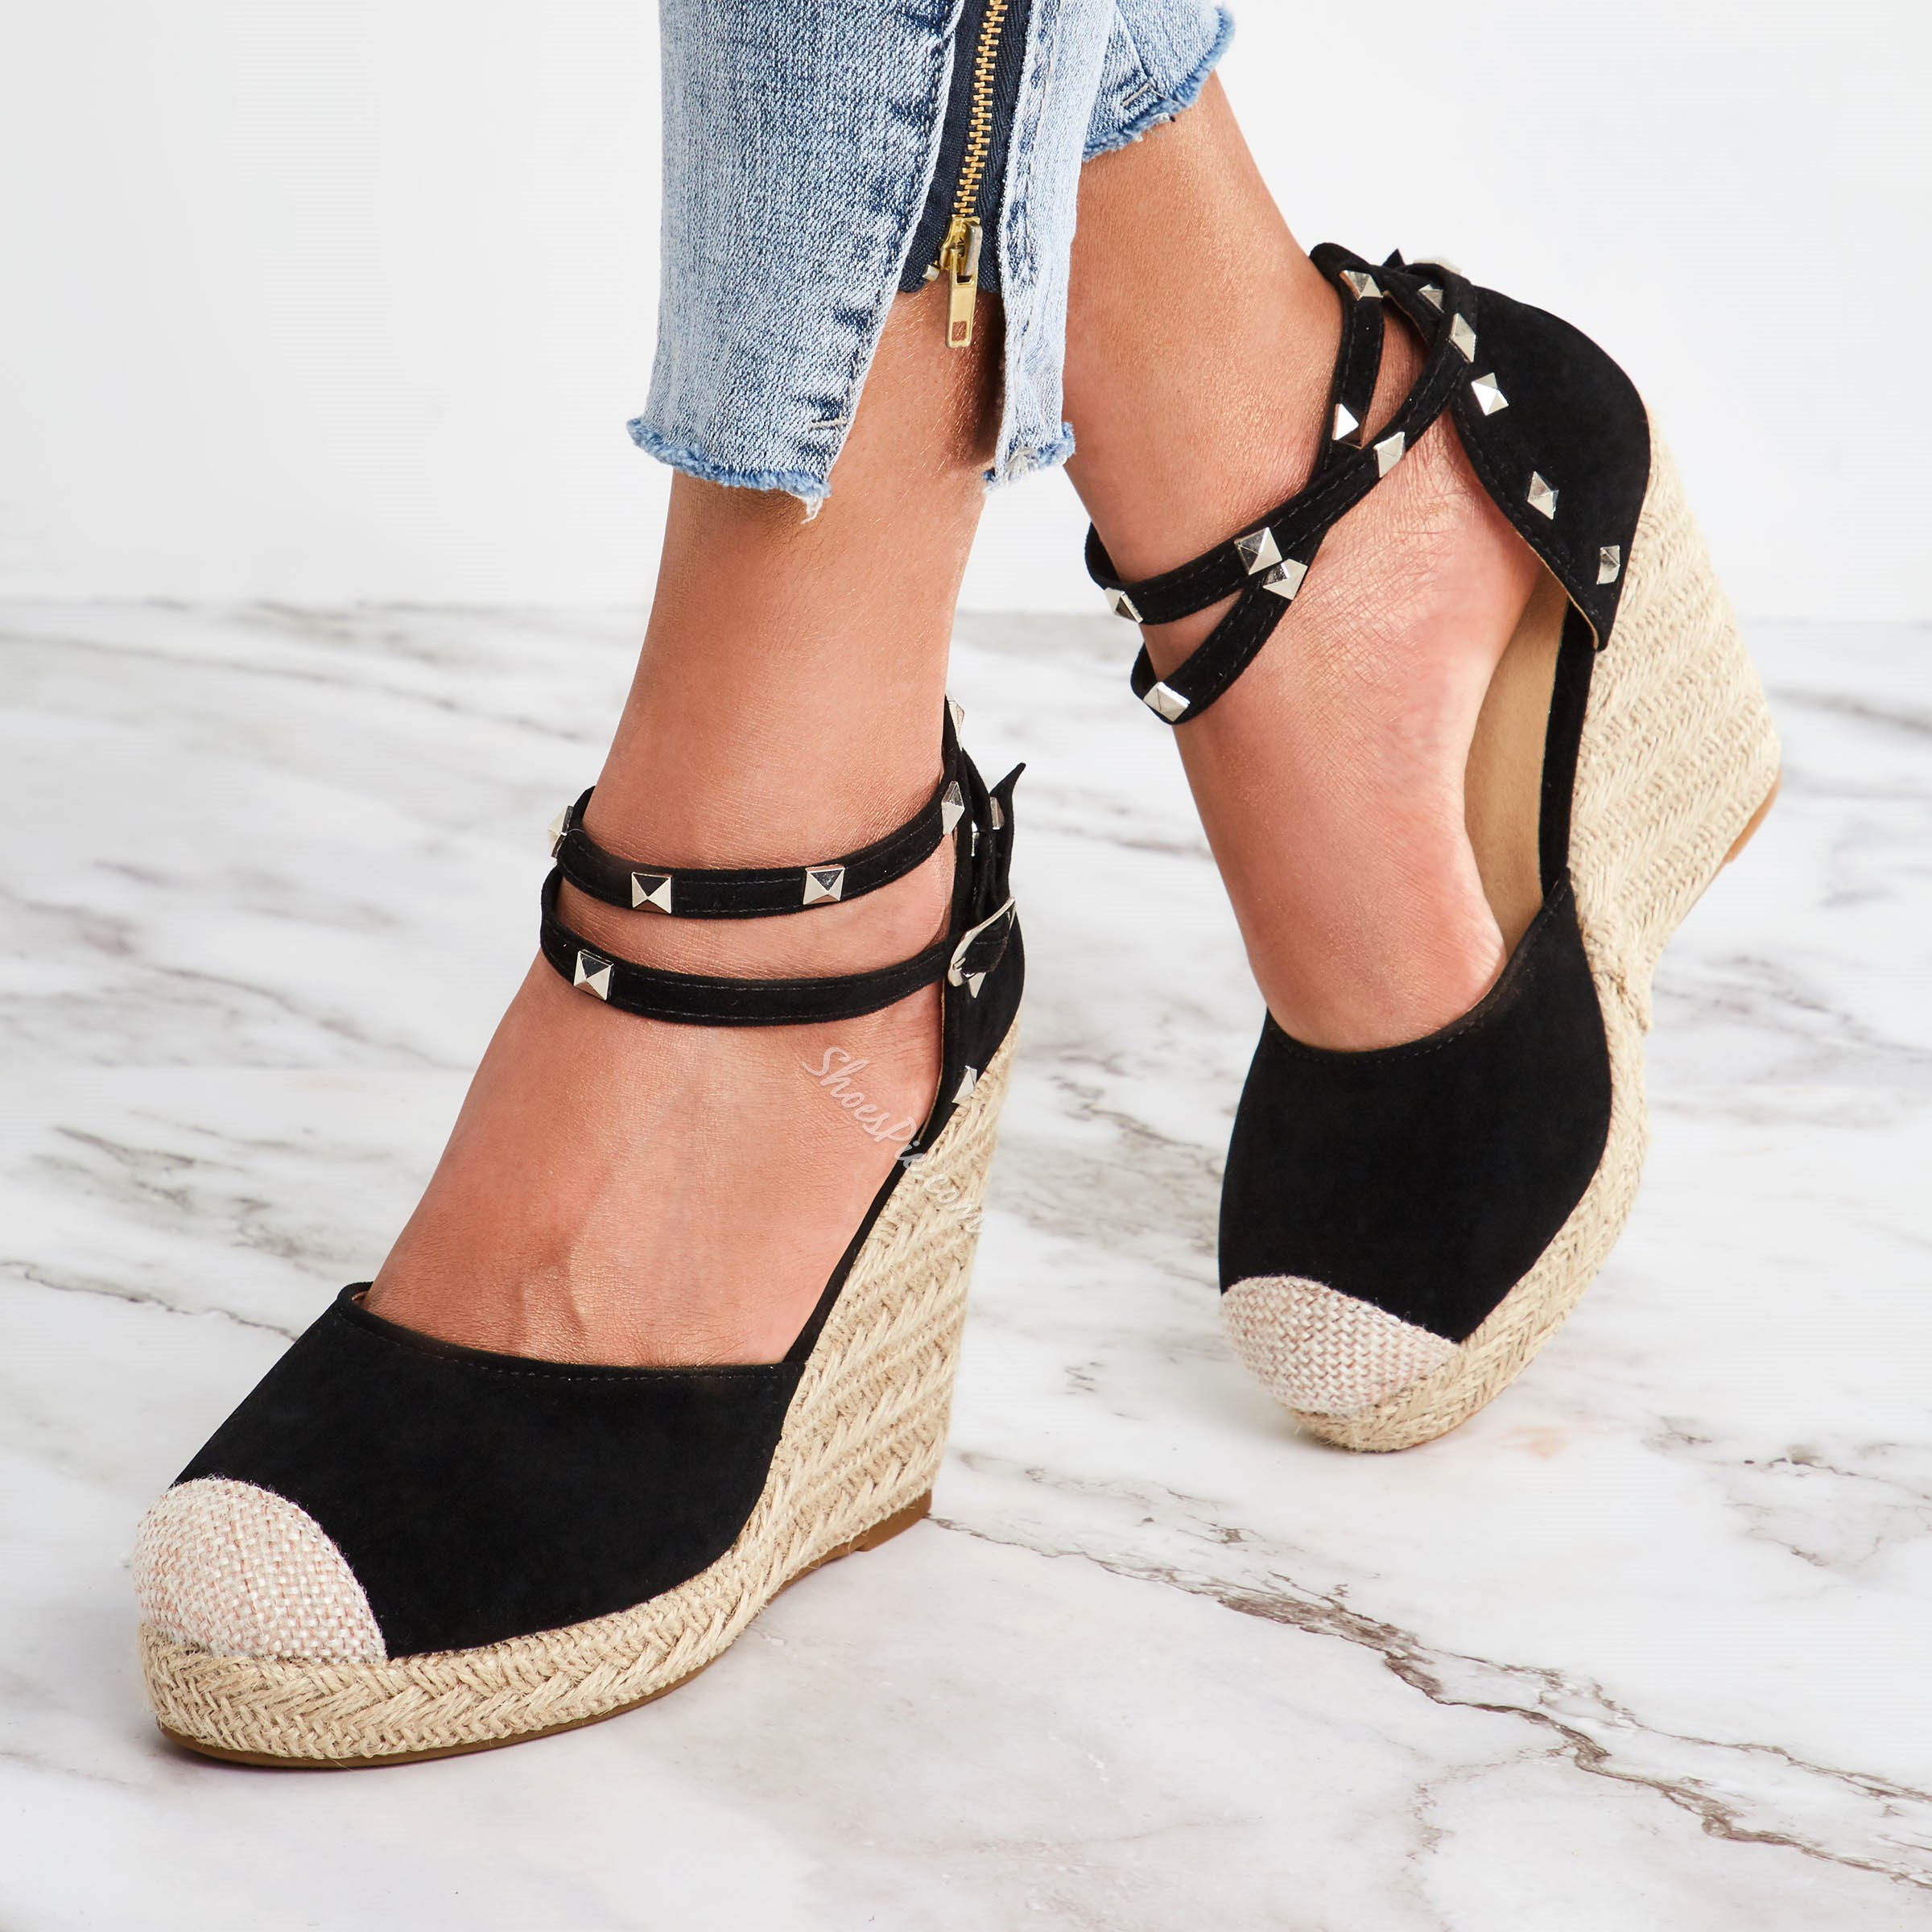 Shoespie Stylish Buckle Closed Toe Rivet Wedge Sandals